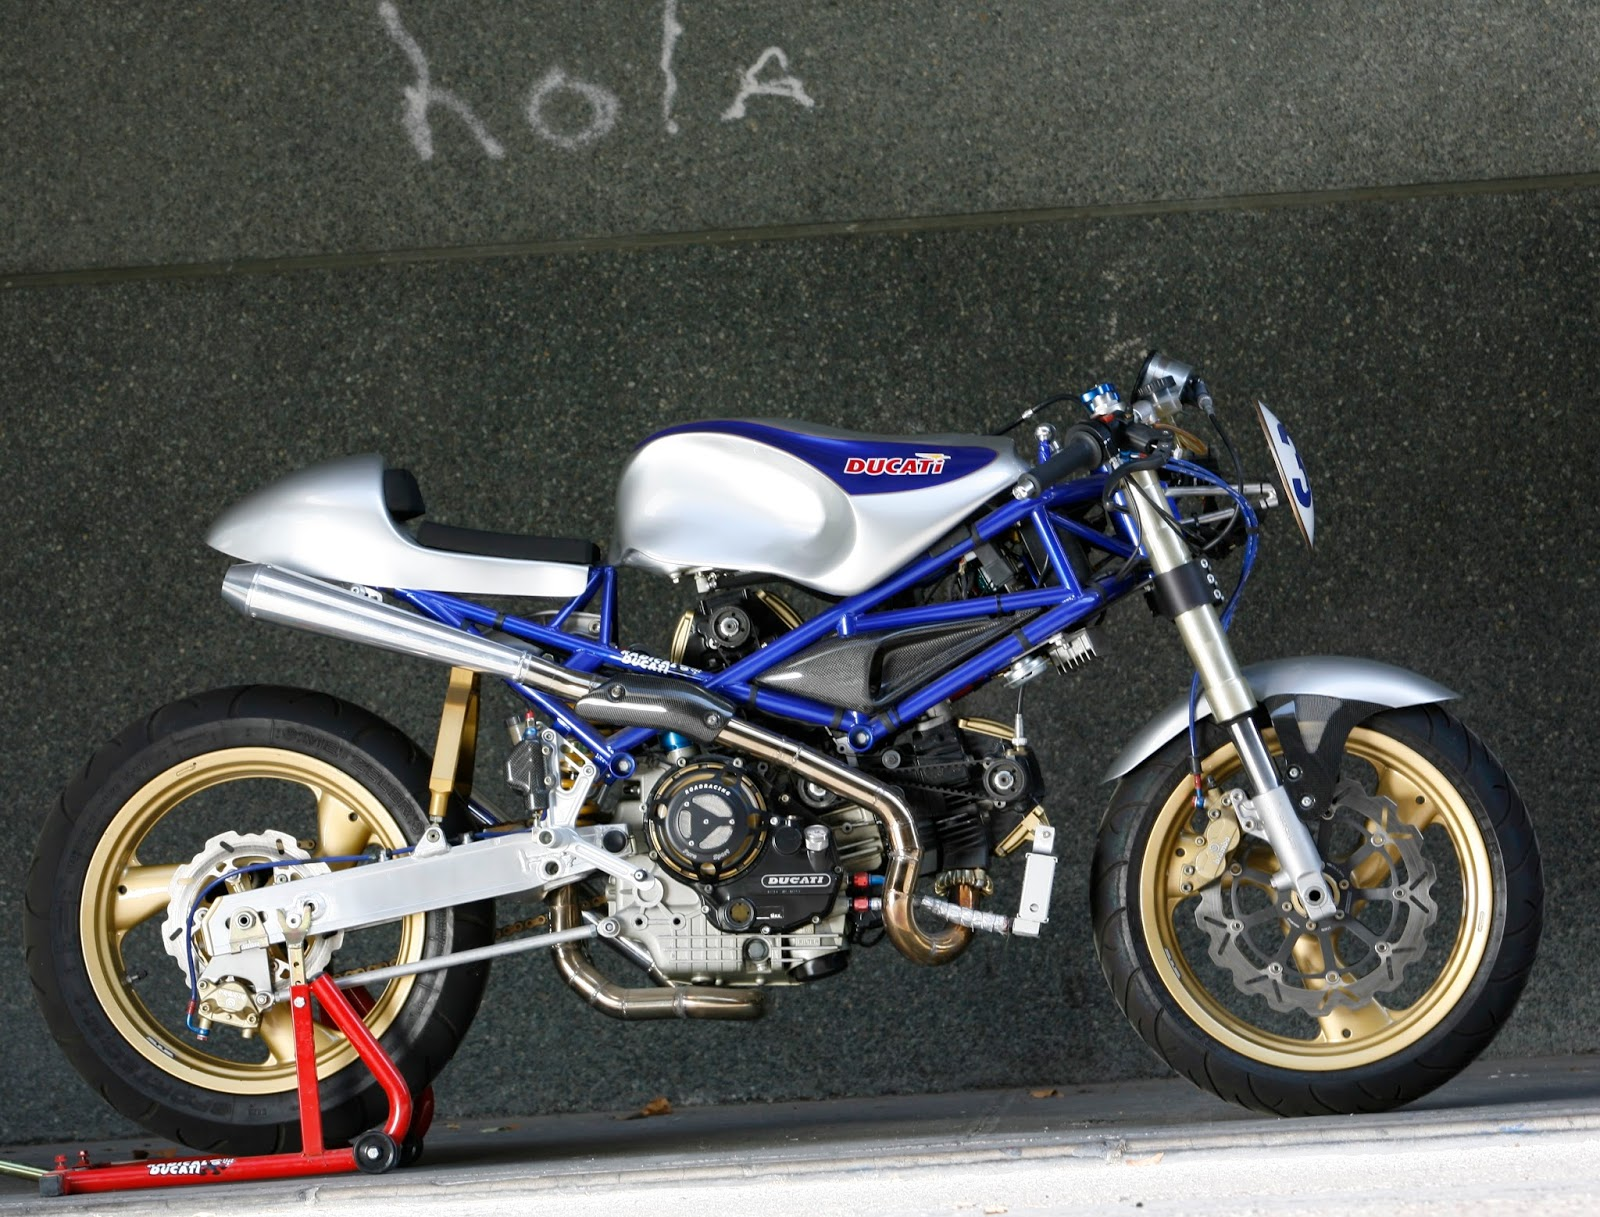 medium resolution of the old blue making of http www radicalducati com index php page old blue